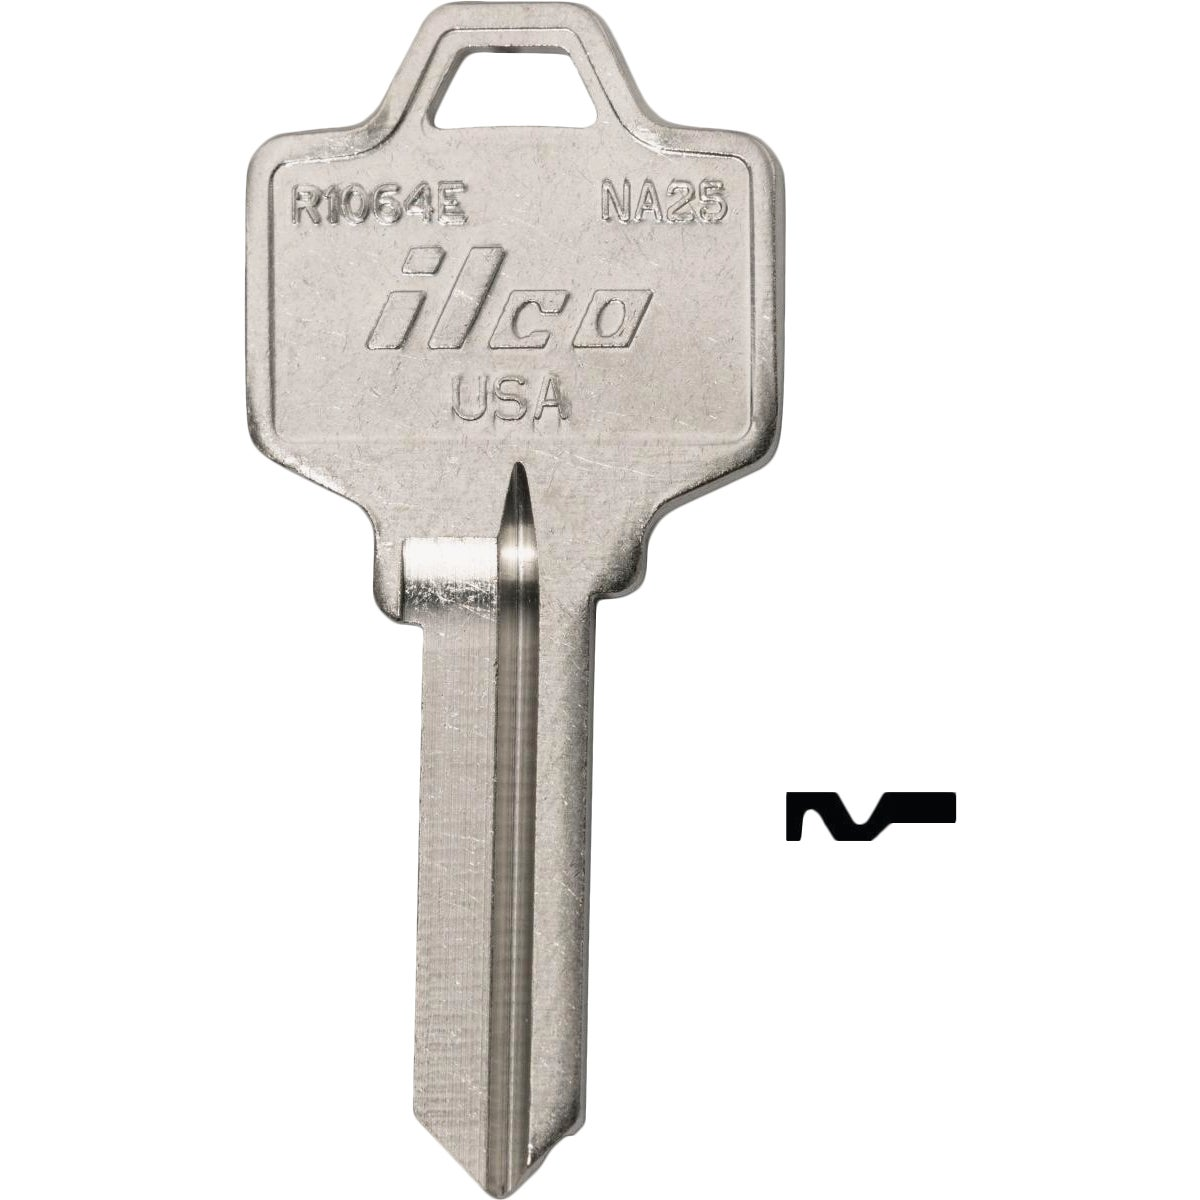 NA6 NATIONL CABINET KEY - DIB R1064D DIB by Ilco Corp